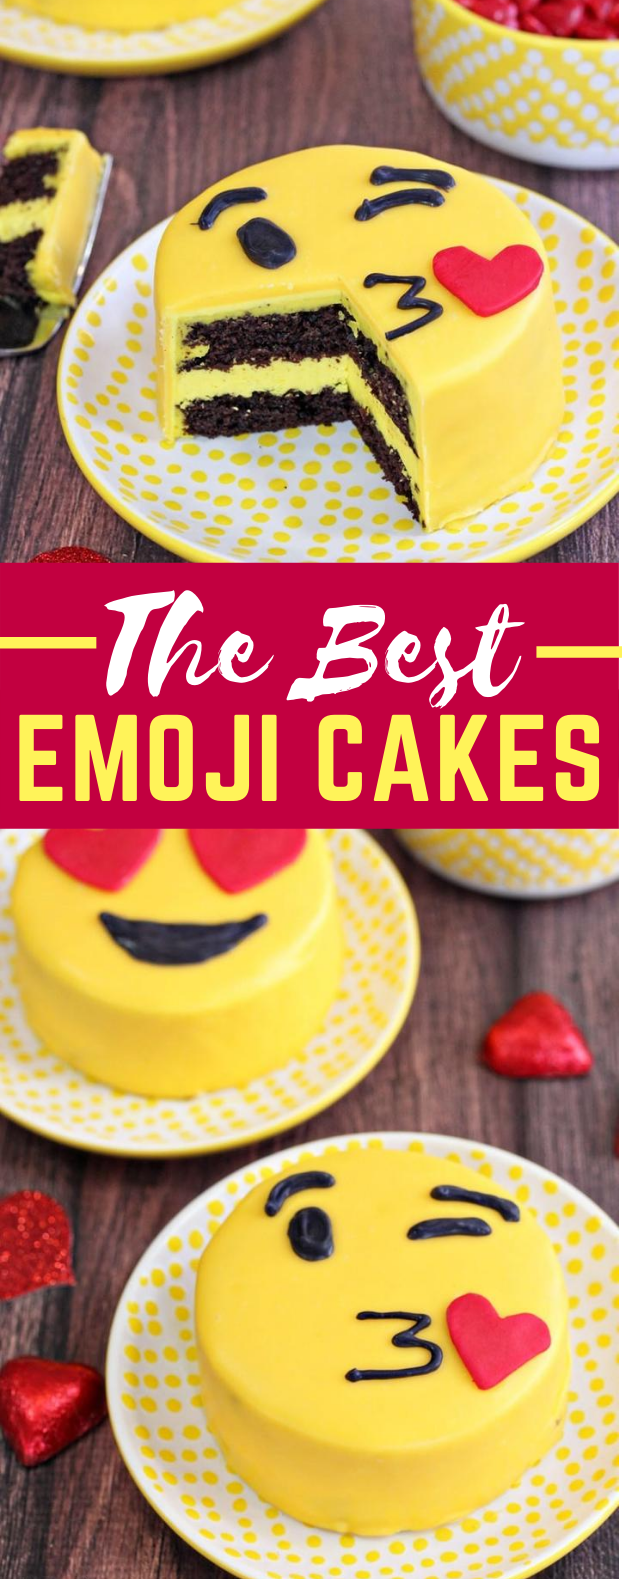 EMOJI CAKES #desserts #sweets #cake #emoticon #gift